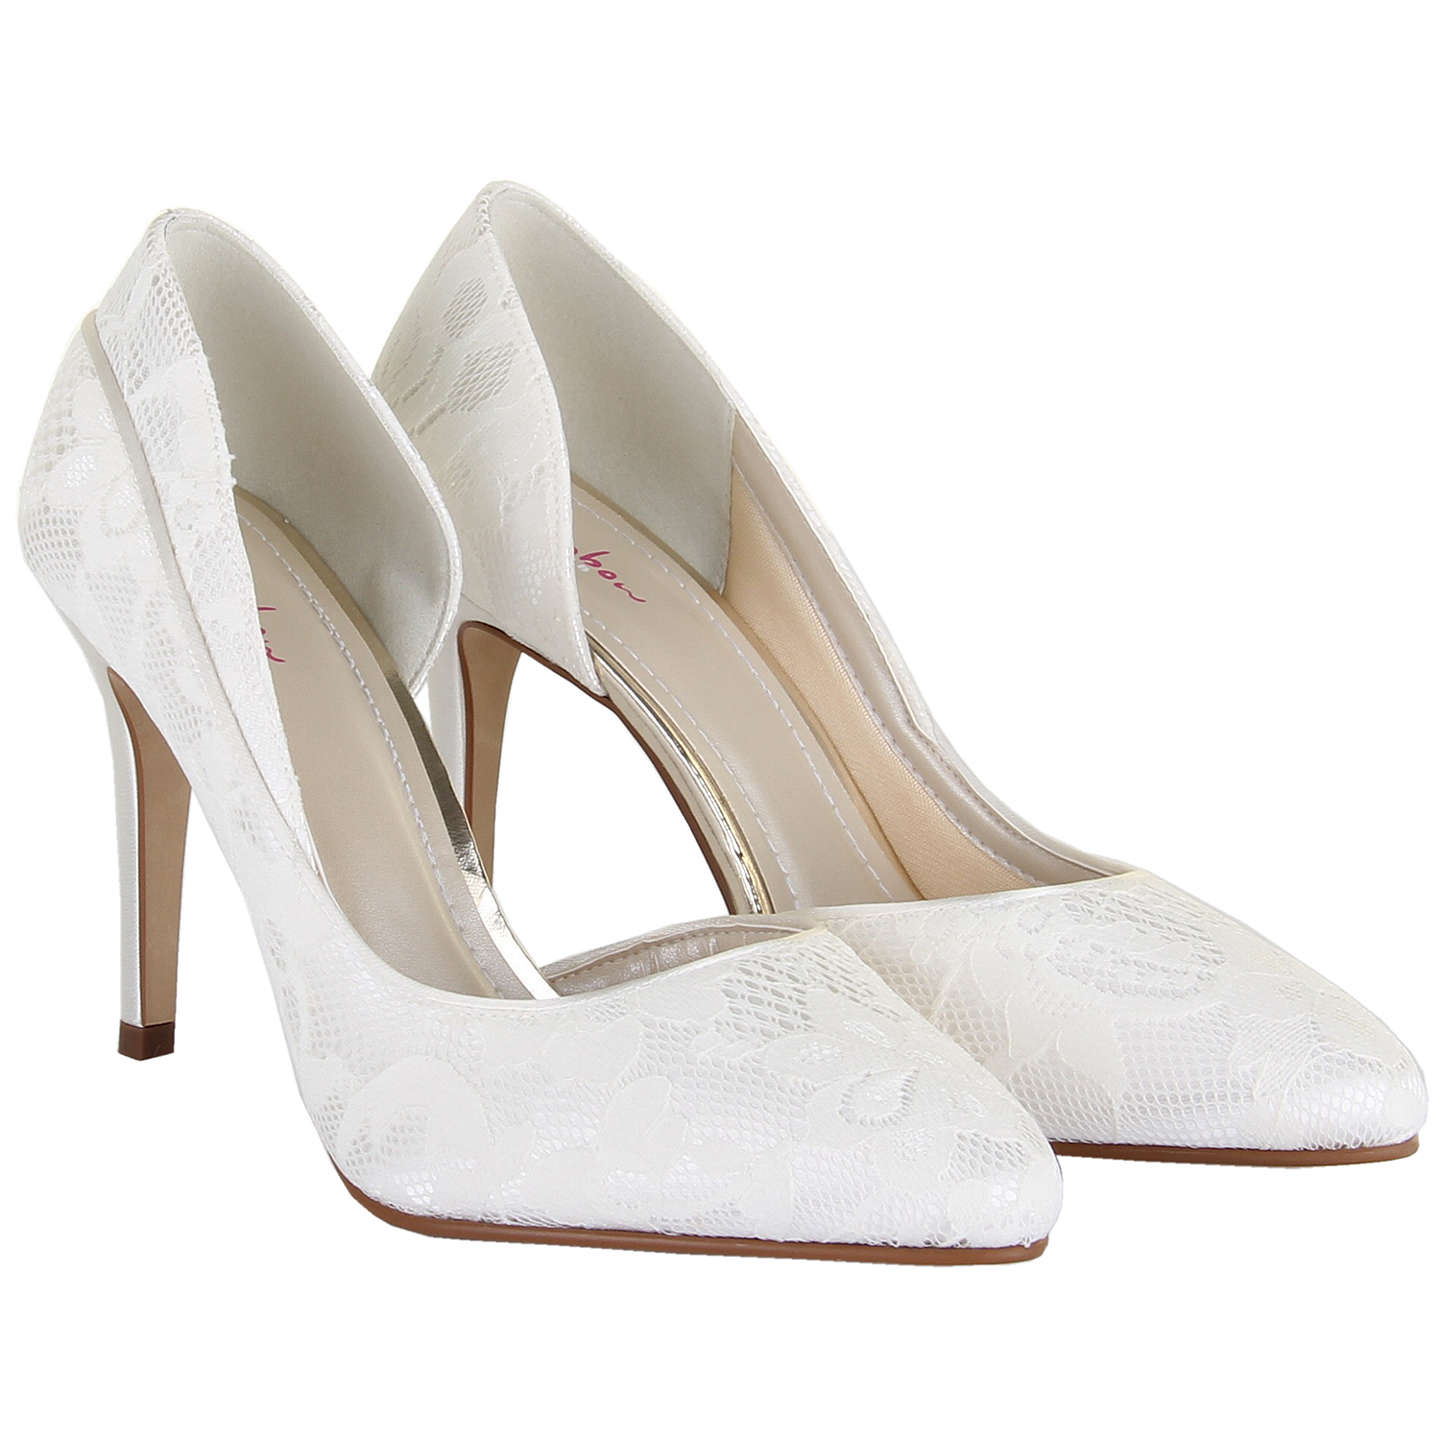 BuyRainbow Club Jessica Asymmetric Court Shoes, Ivory Satin, 6.5 Online at johnlewis.com